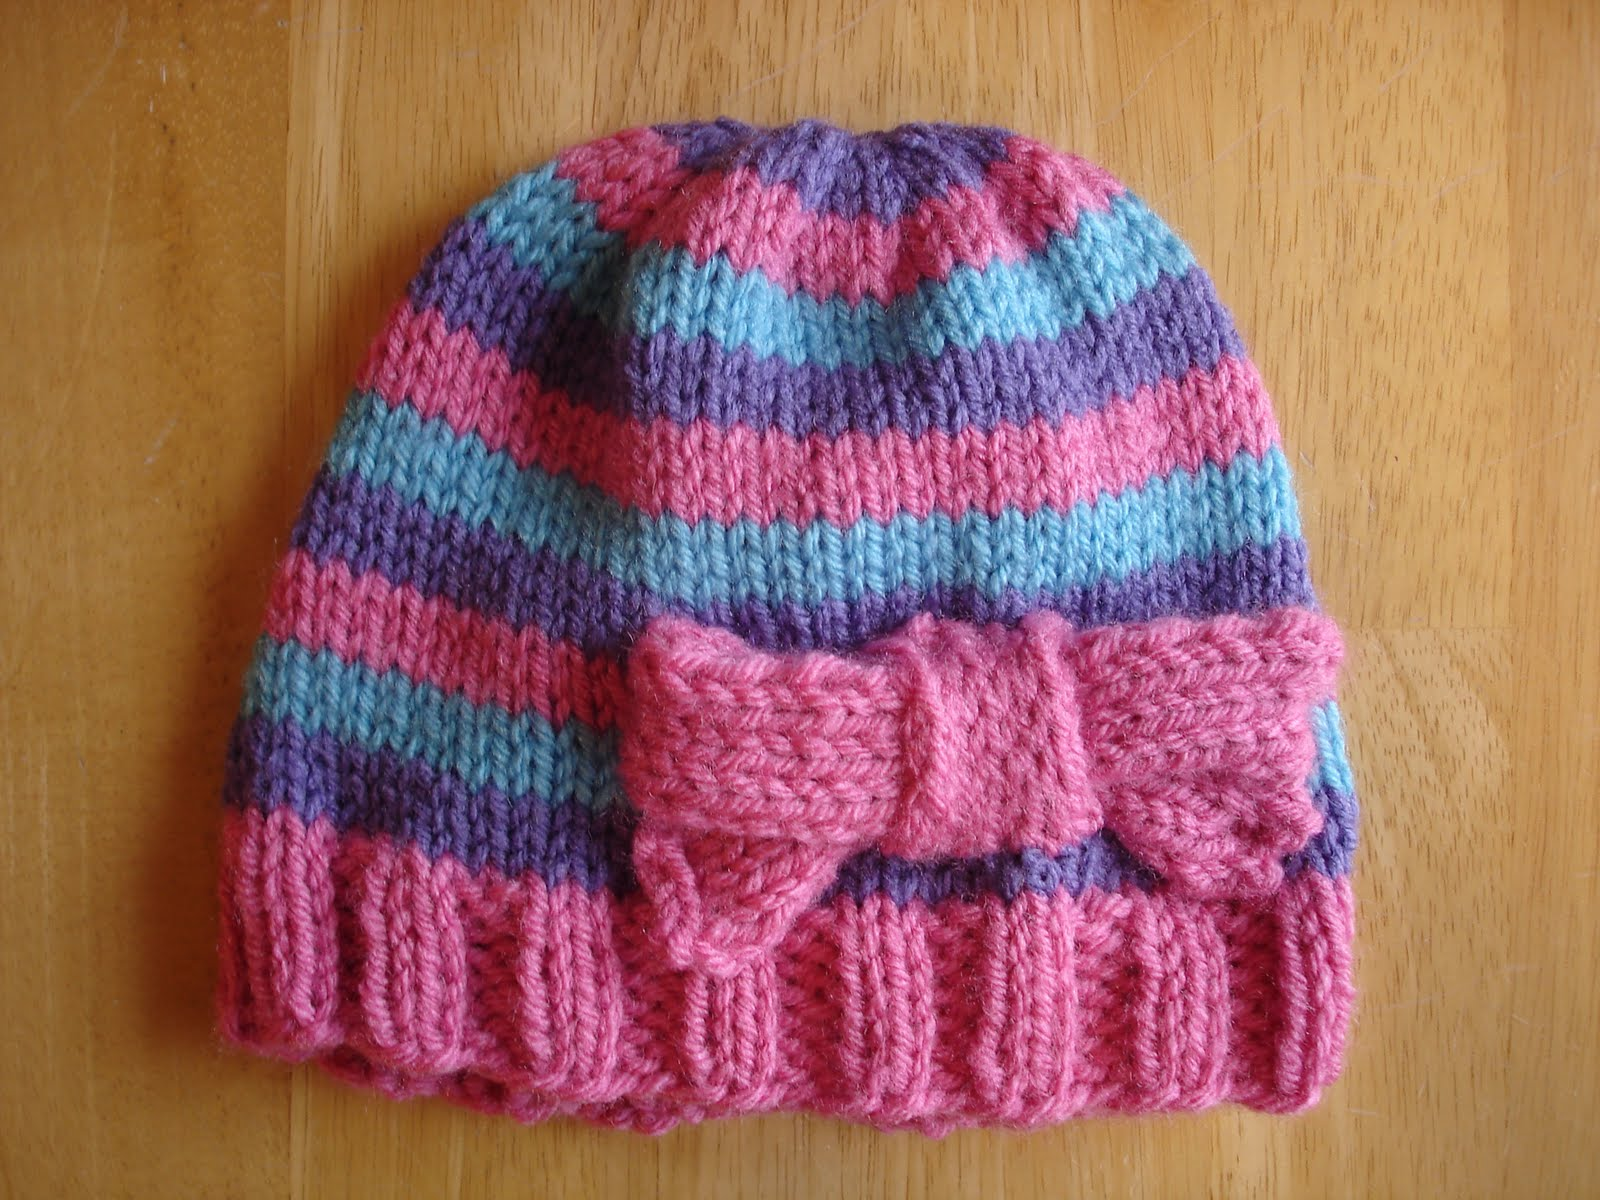 Free Knitting Patterns For Toddlers Beanies : Fiber Flux: Free Knitting Pattern...Super Pink Toddler Hat!